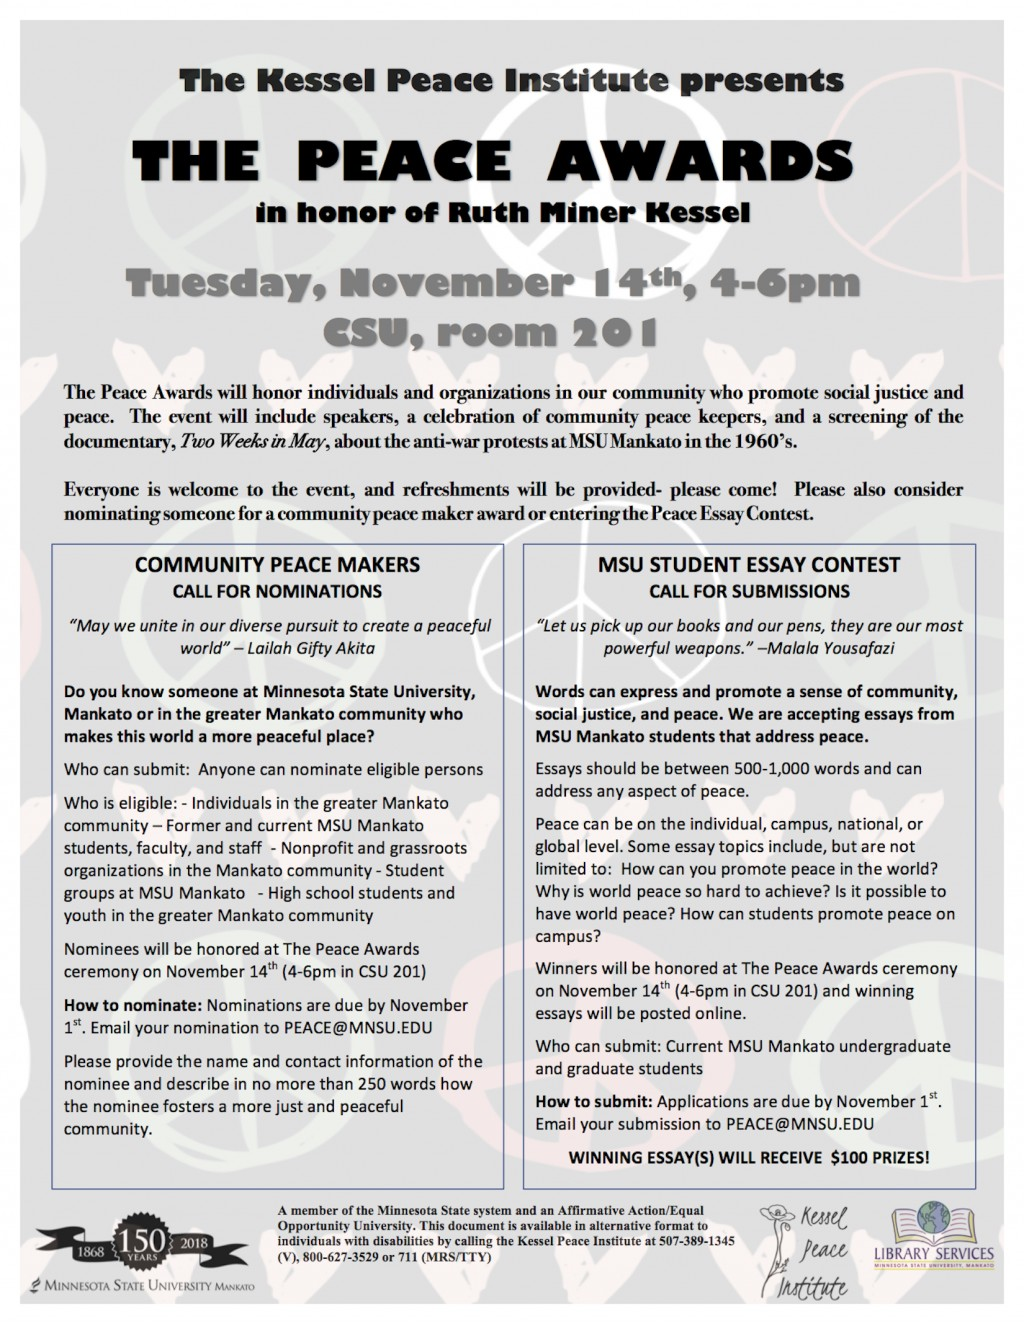 007 Peace Essay Example Awards Flyer Rare In Simple English Contest 2019 Topics Large